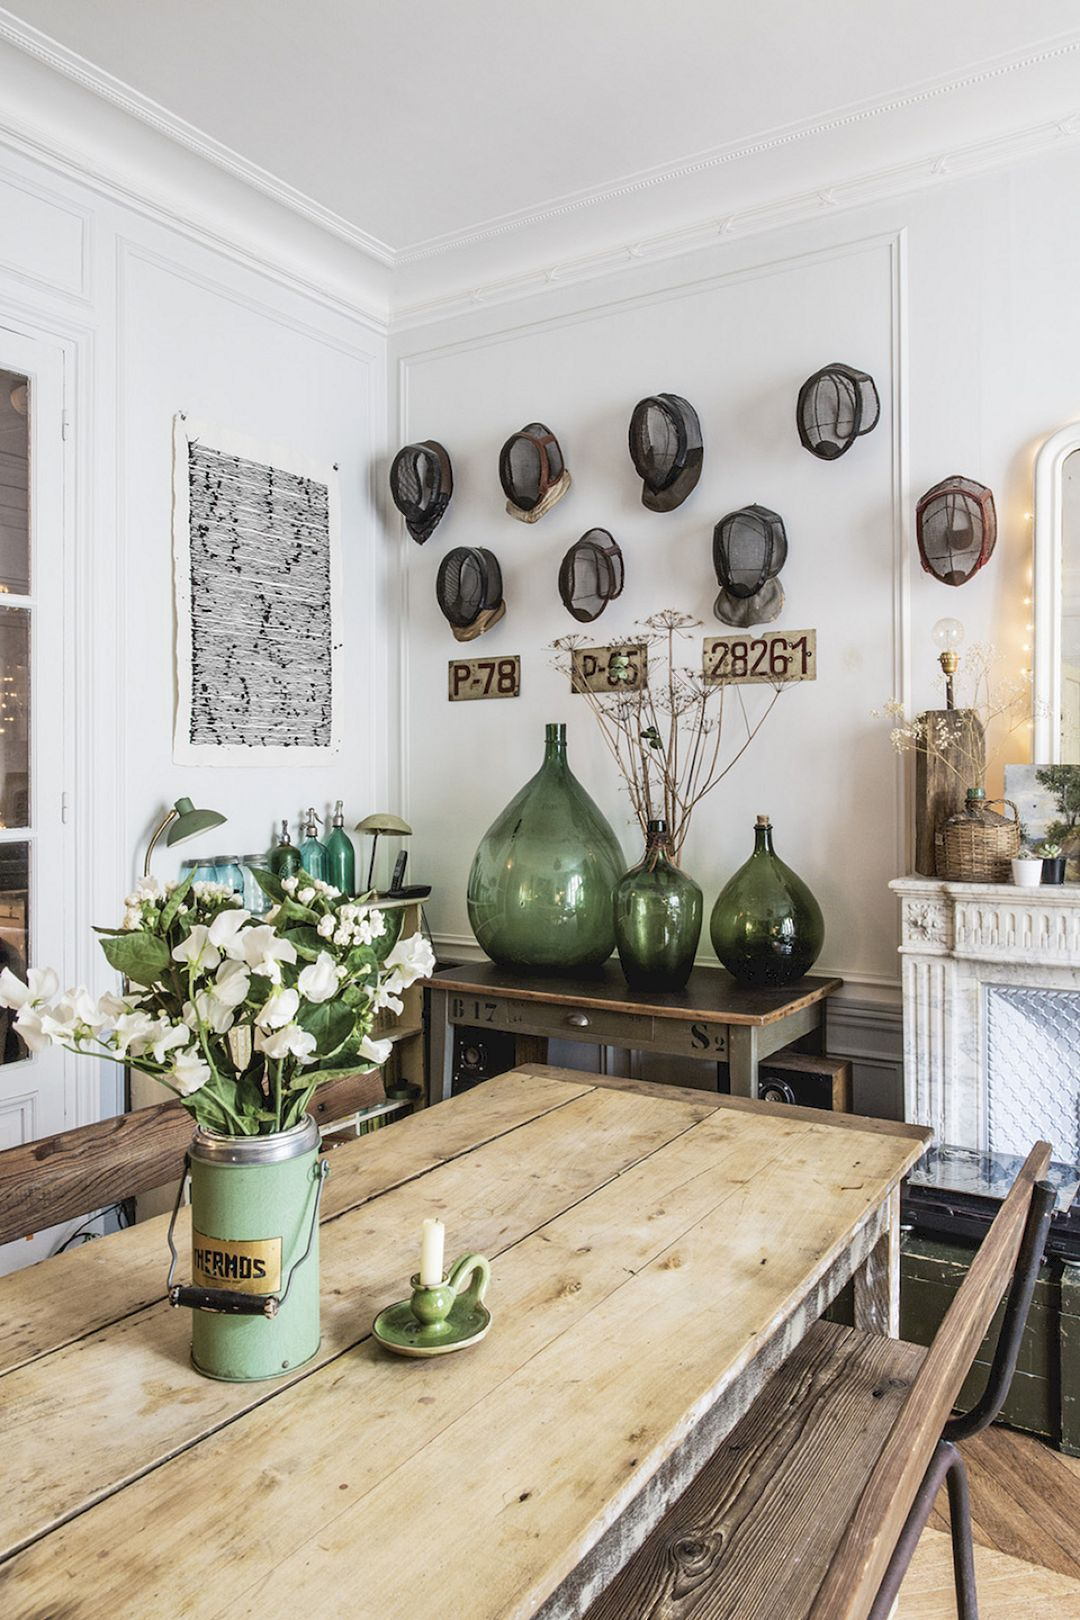 Top Swedish Scandinavian Farmhouse Style For Your Home And Apartment No 06 Scandinavianfarmhousestyle In 2020 Swedish Decor Wood Dining Room Rustic Kitchen